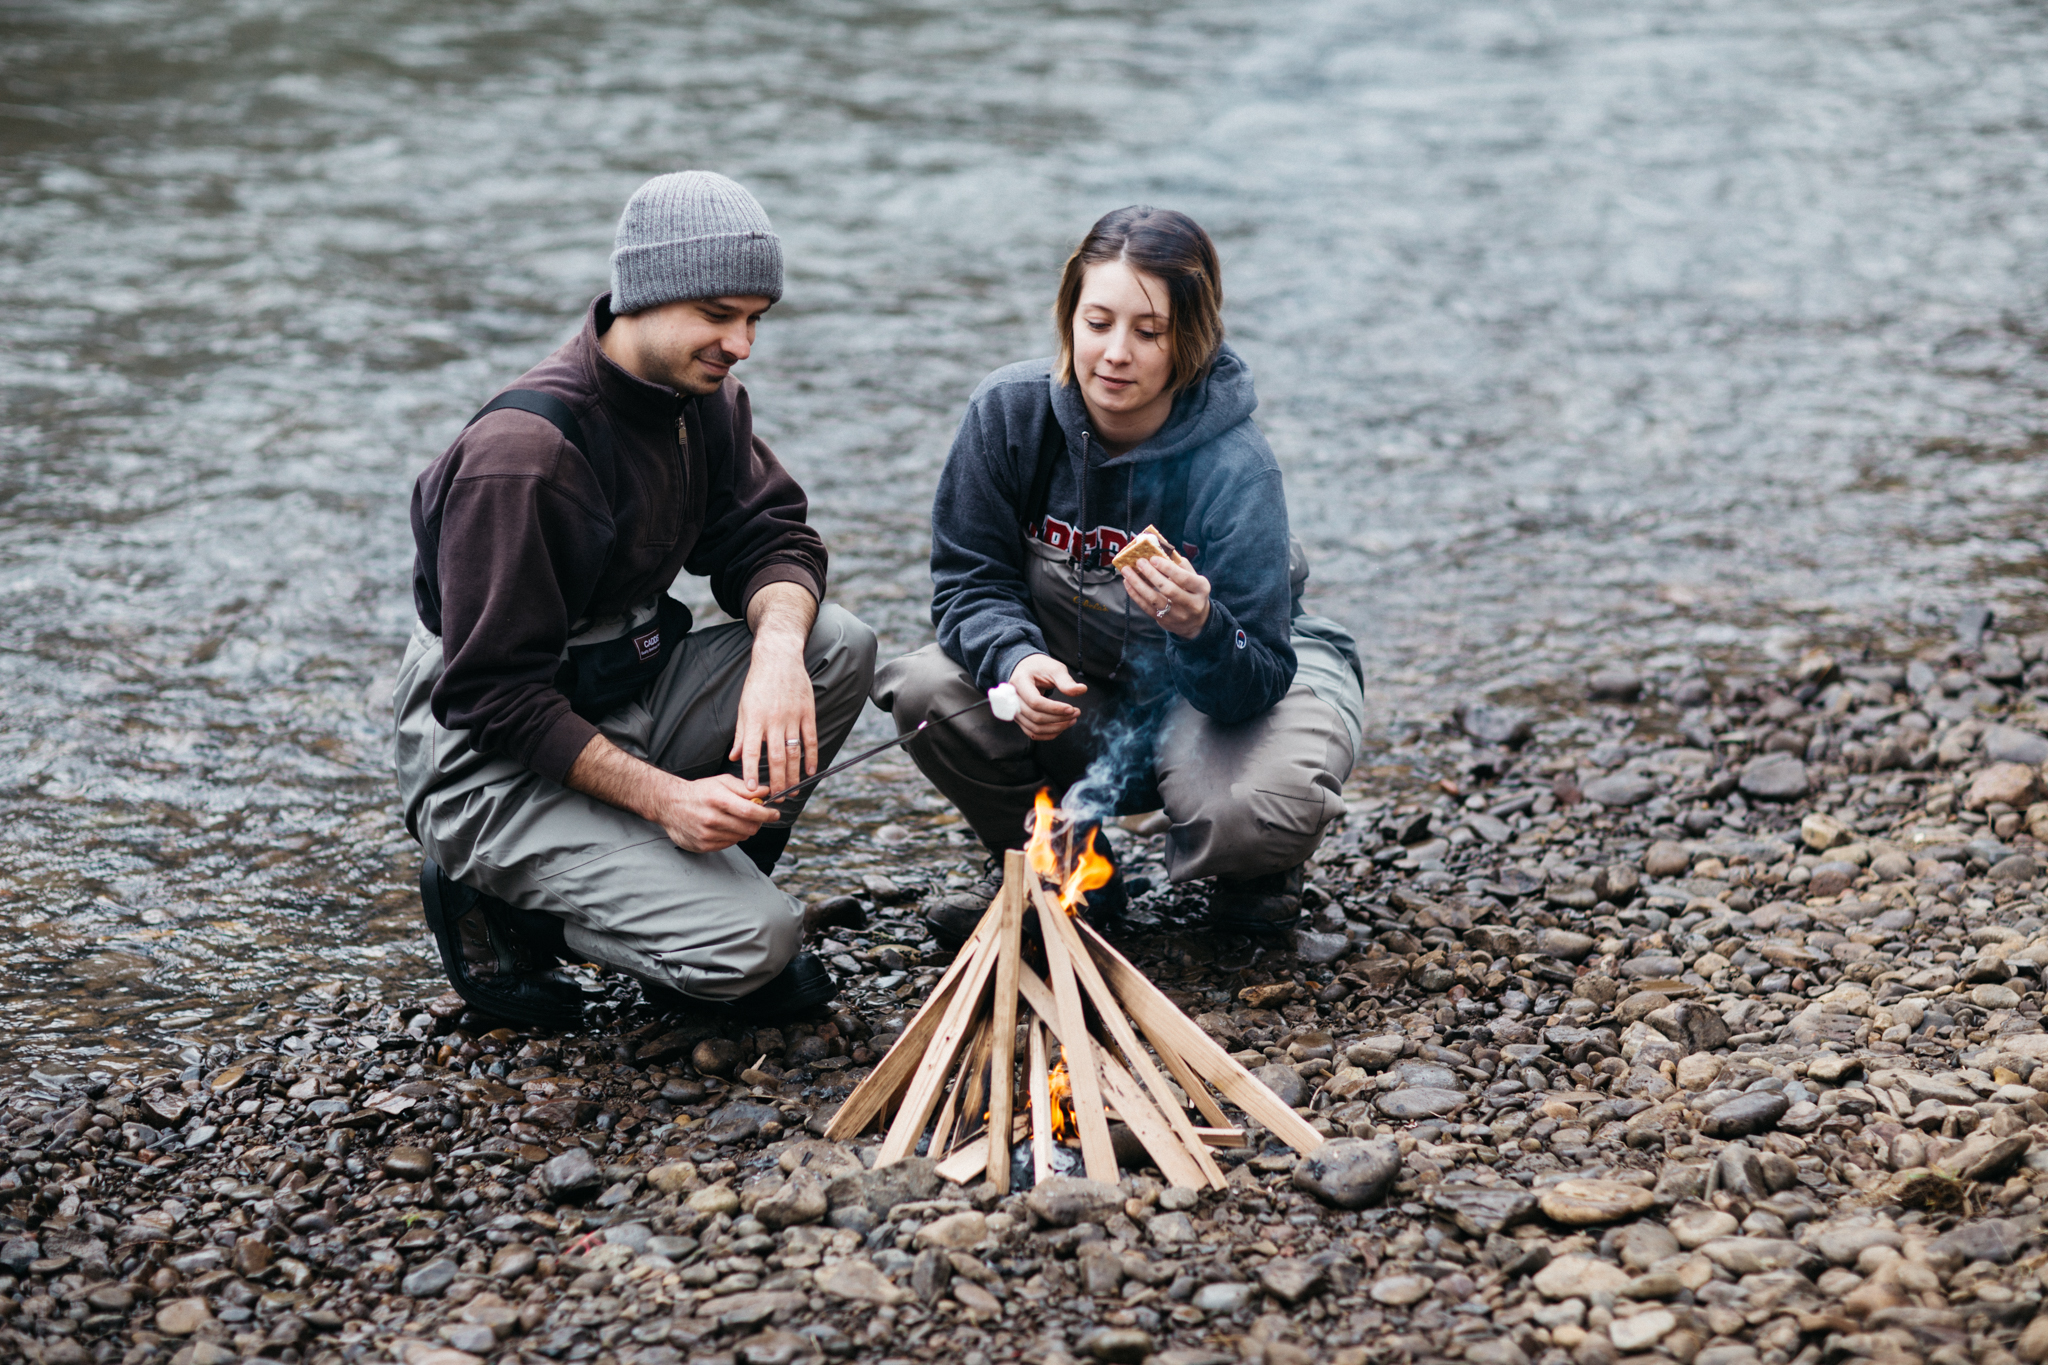 Fly_Fishing_Engagement -18.jpg